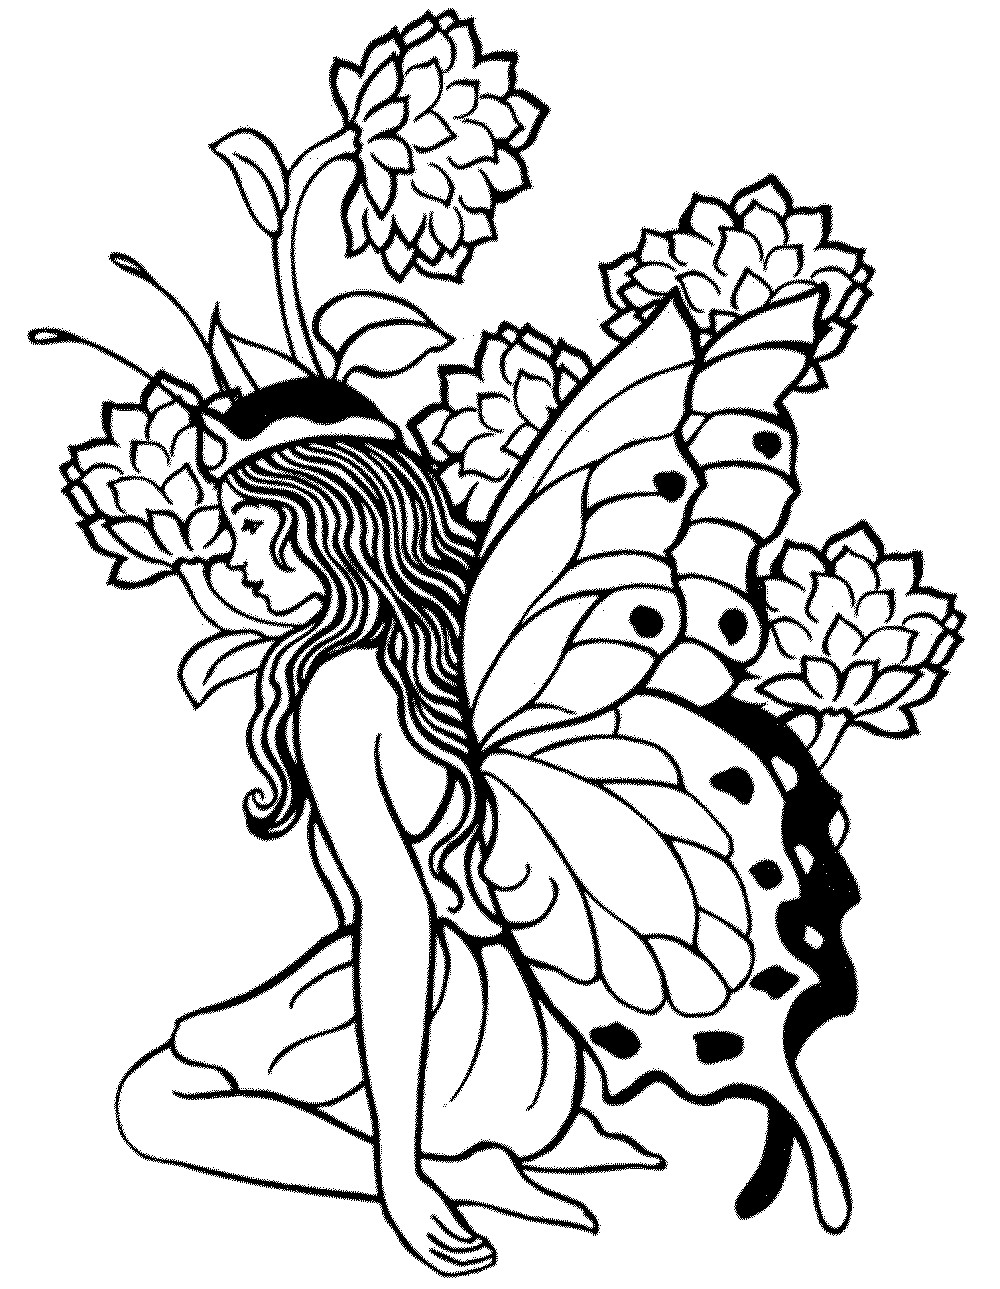 Printable Coloring Pages For Men  Free Coloring Pages For Adults Printable Detailed Image 23